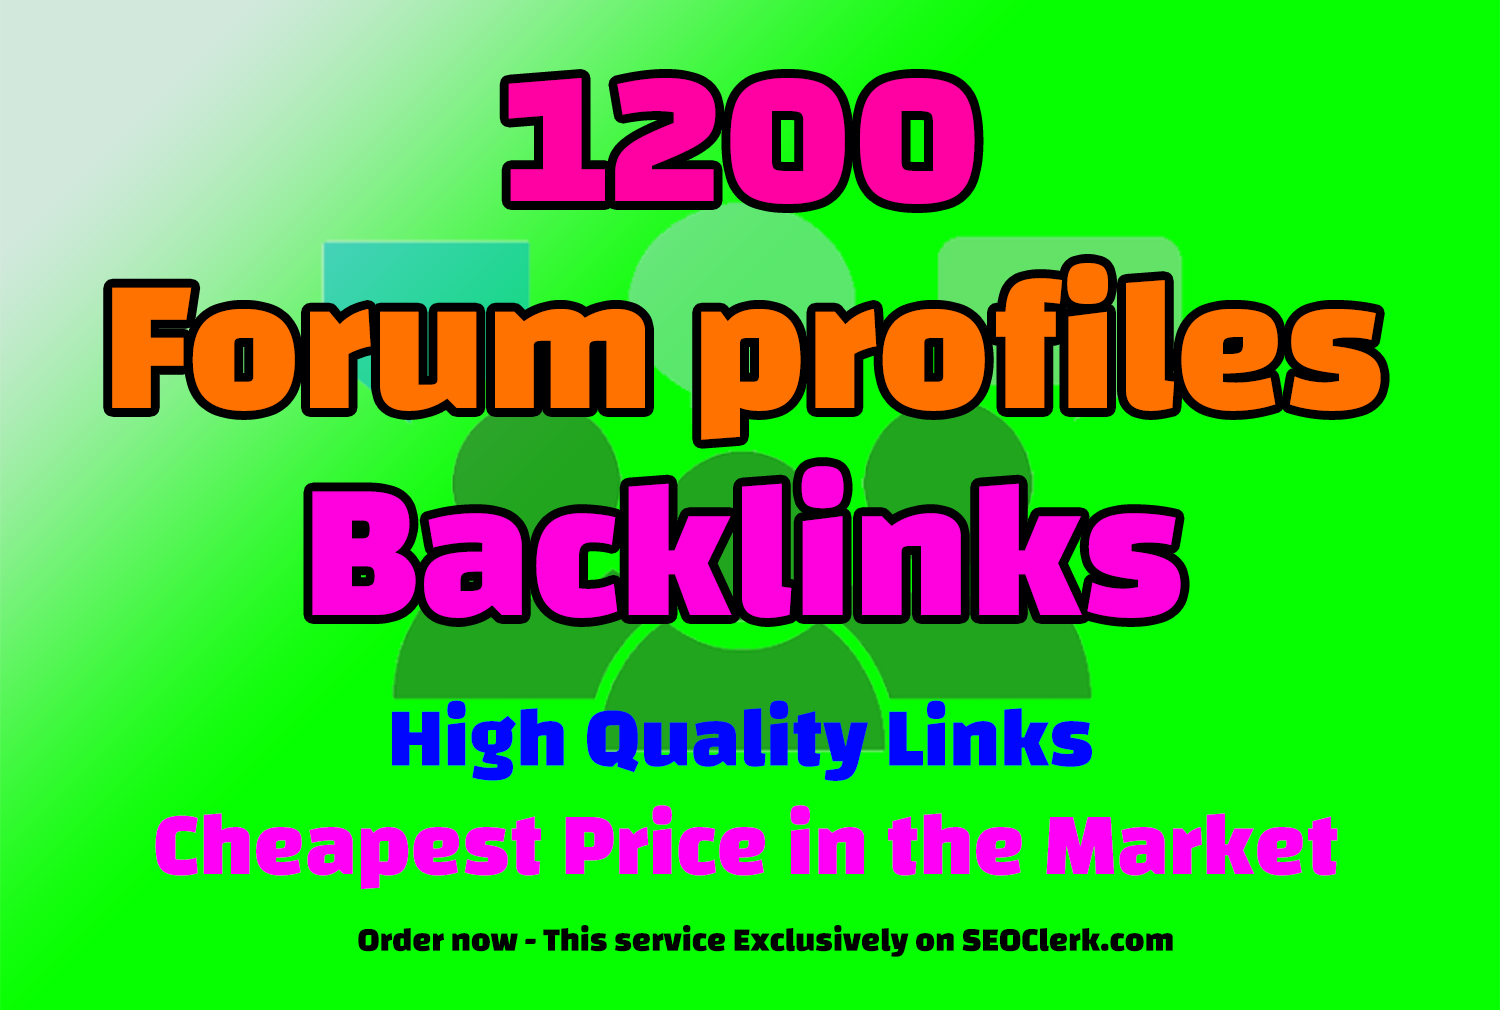 1200 quality forum profiles backlinks - Free Indexing